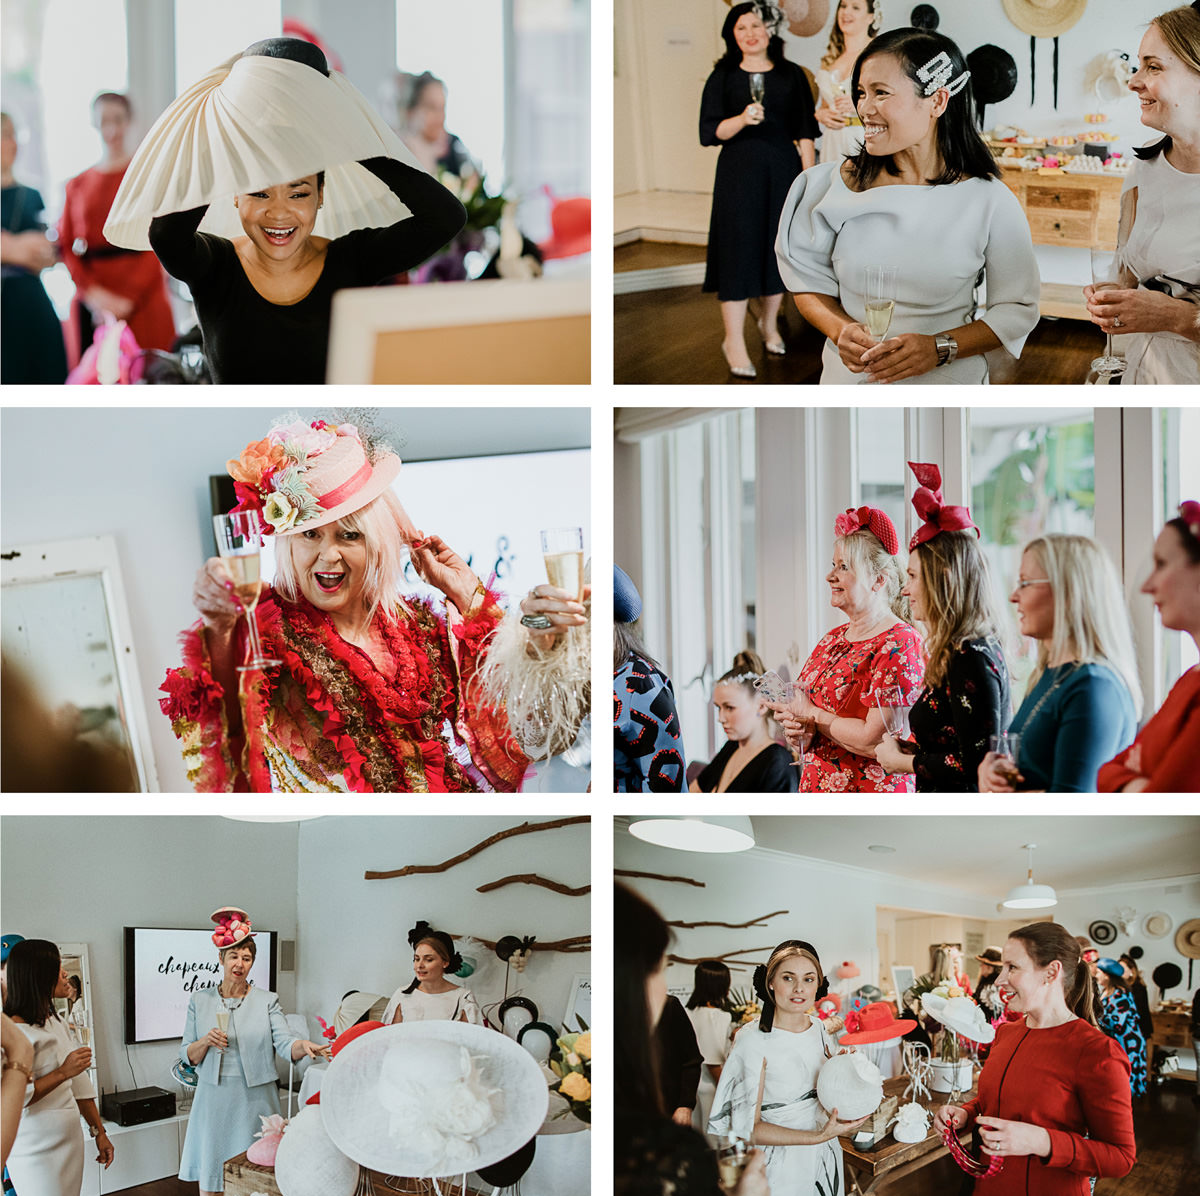 millinery in melbourne - new trends and collections in 2019-2020